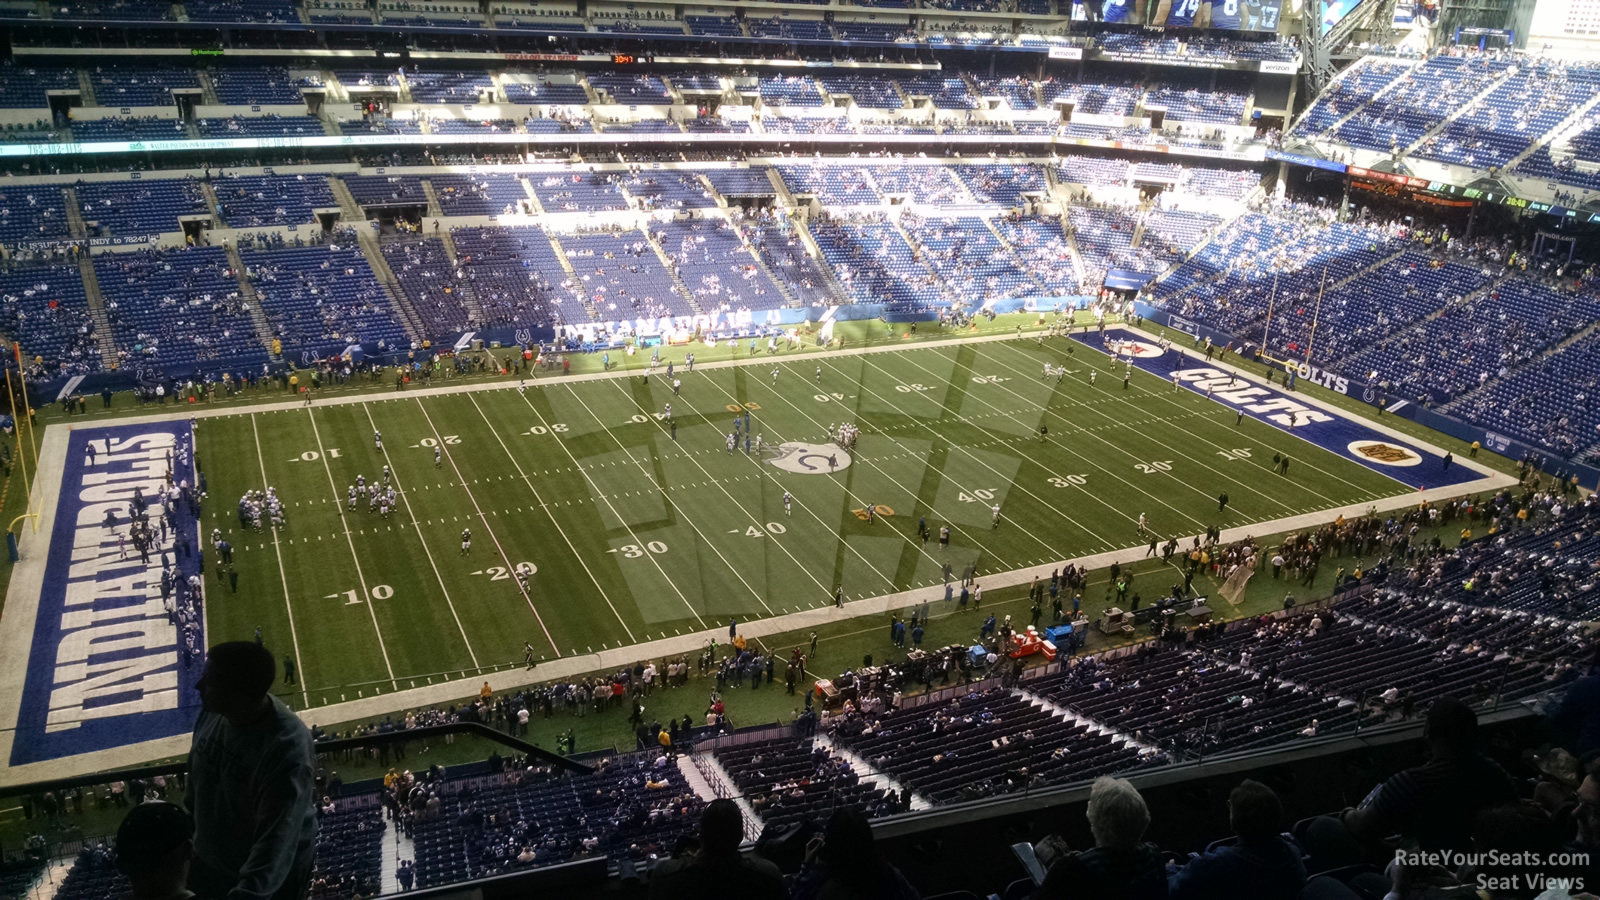 Section 616 seat view